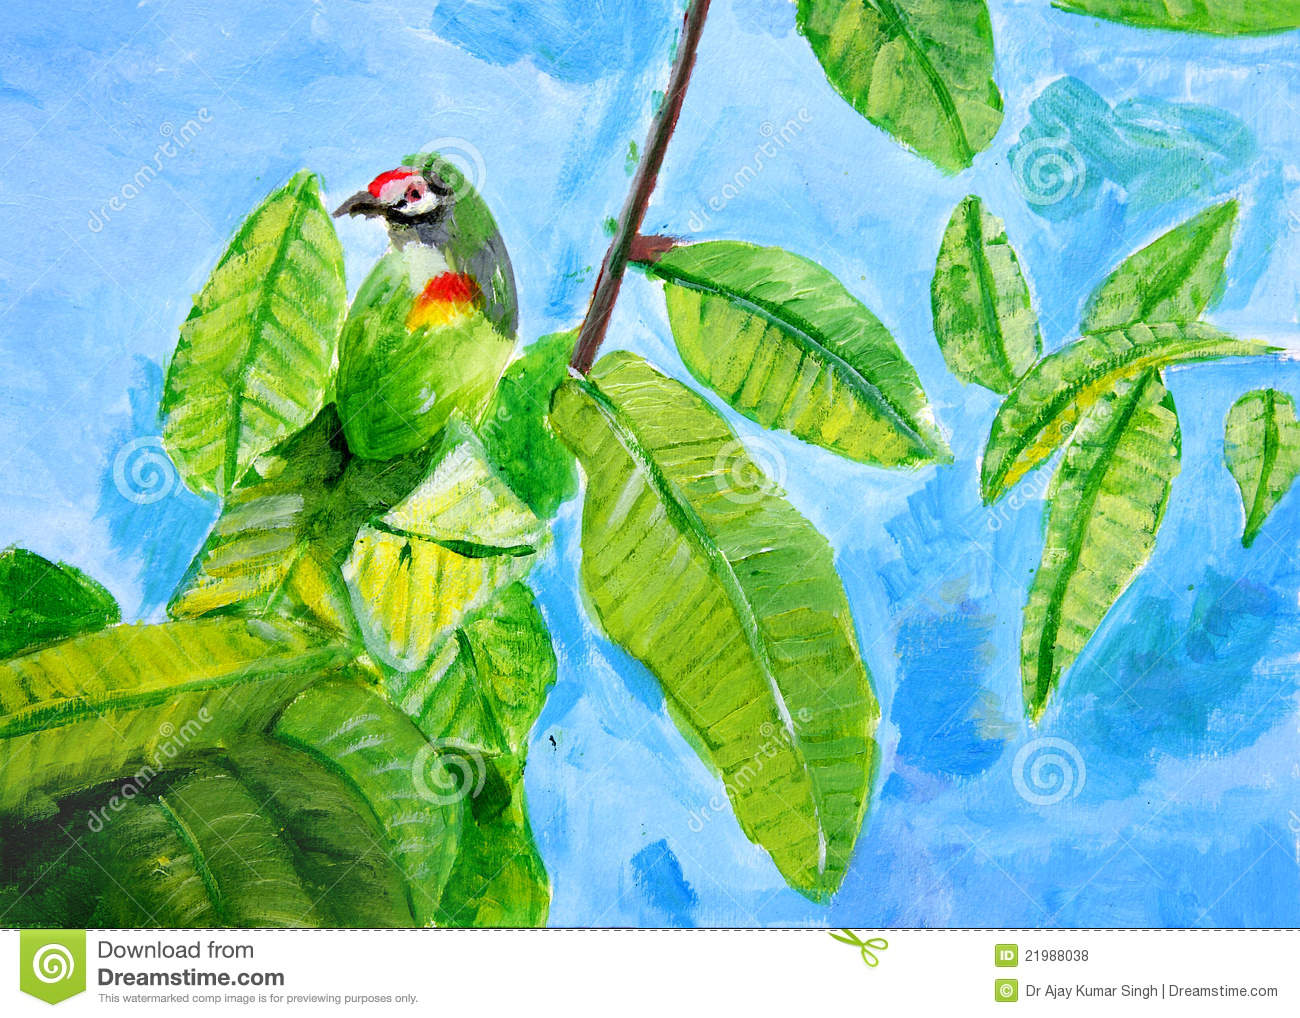 Coppersmith Barbet clipart #8, Download drawings